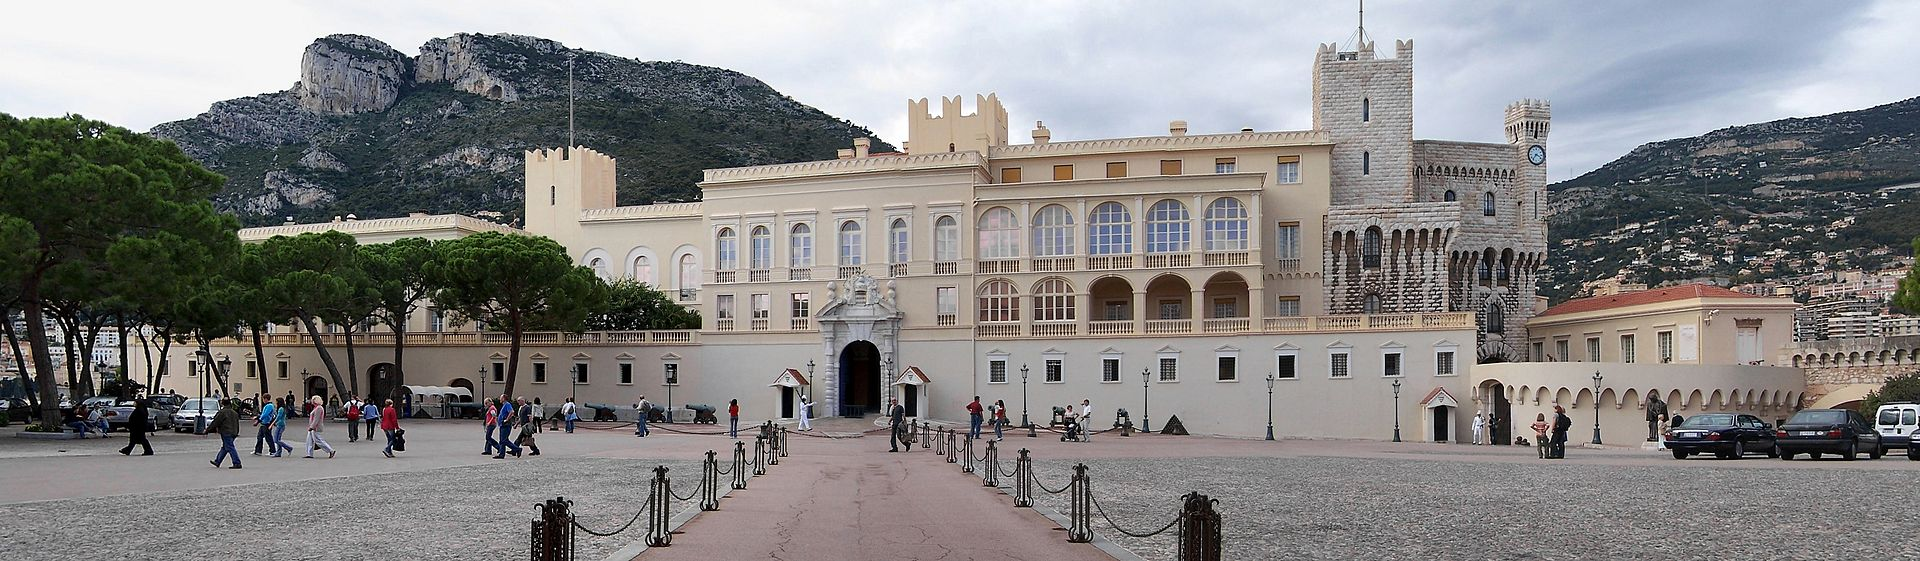 Prince's Palace of Monaco, photo released into public domain by  Berthold Werner